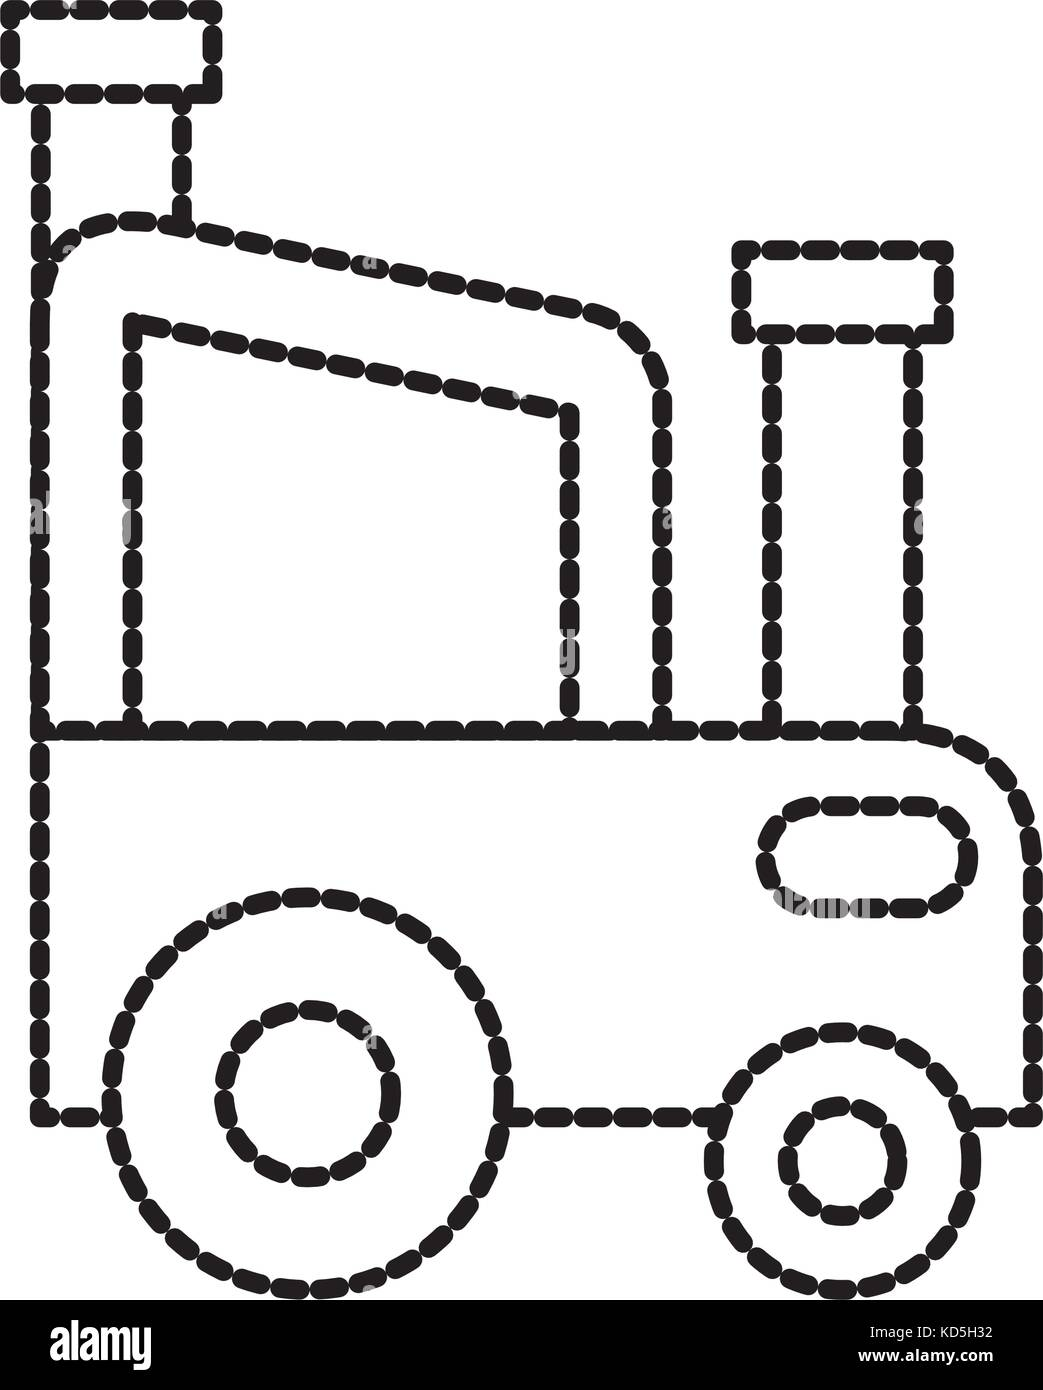 tractor car stock photos tractor car stock images alamy Mahindra India agricultural tractor car vehicle farm transport stock image